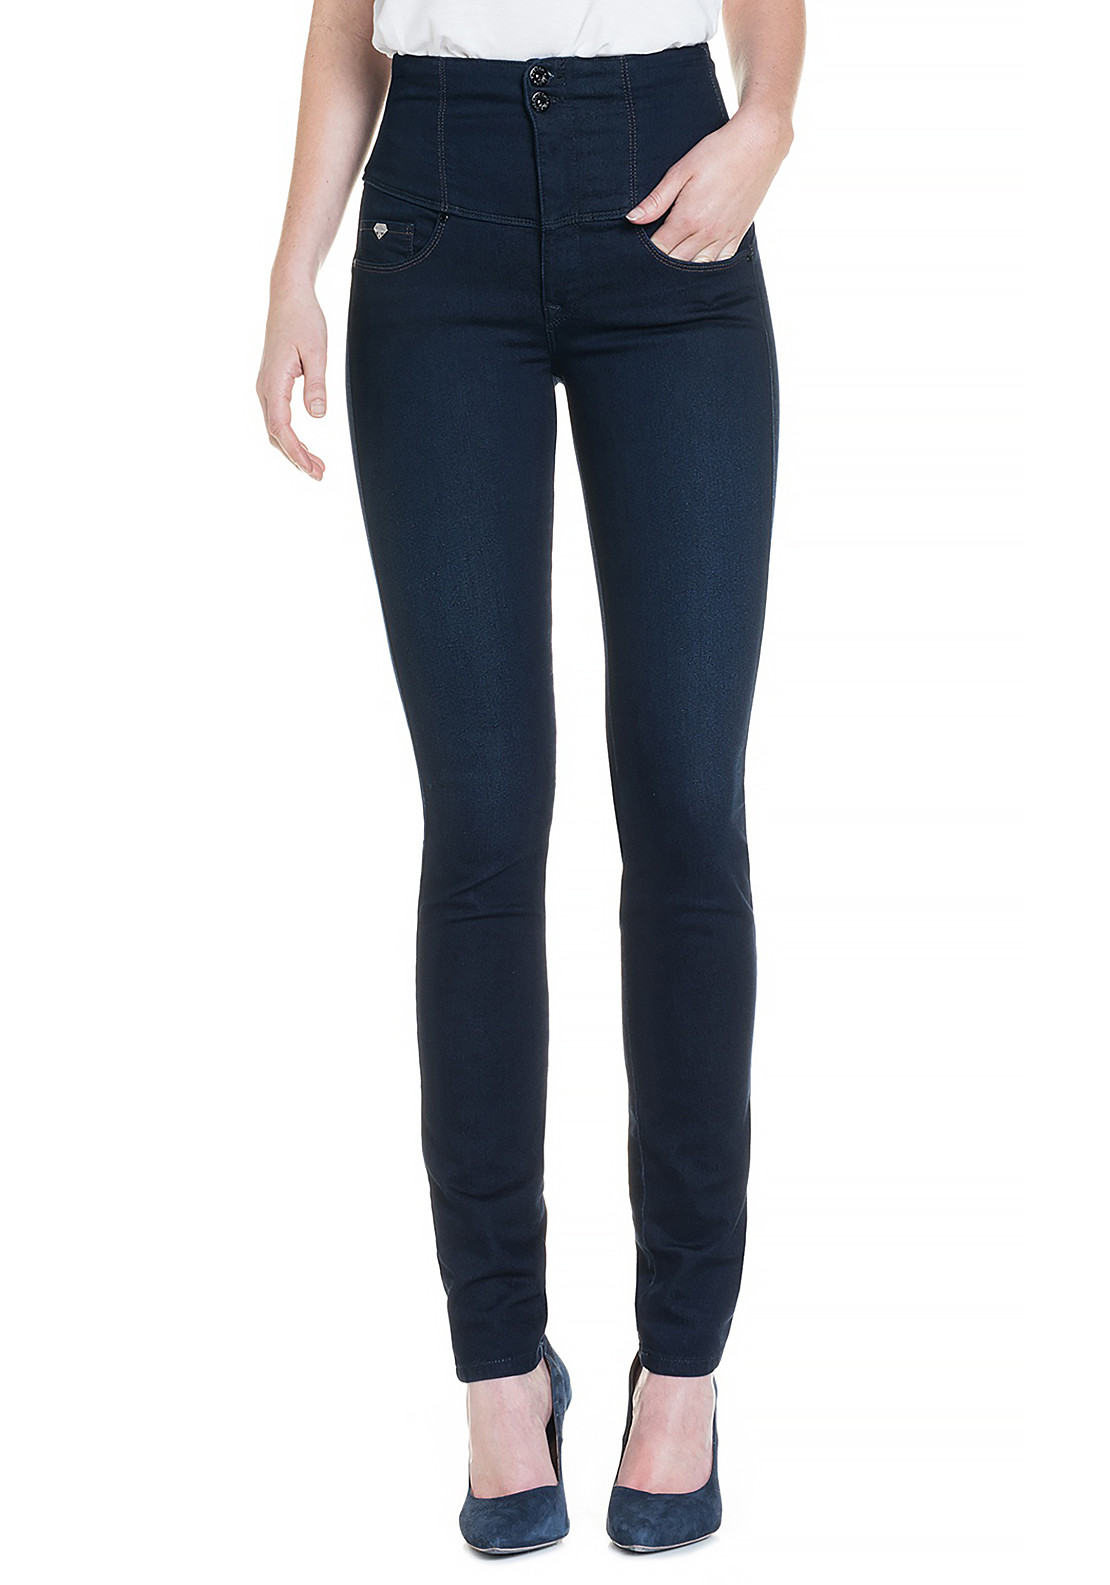 Salsa Diva High Waist Slimming Skinny Jeans, Dark Blue Denim